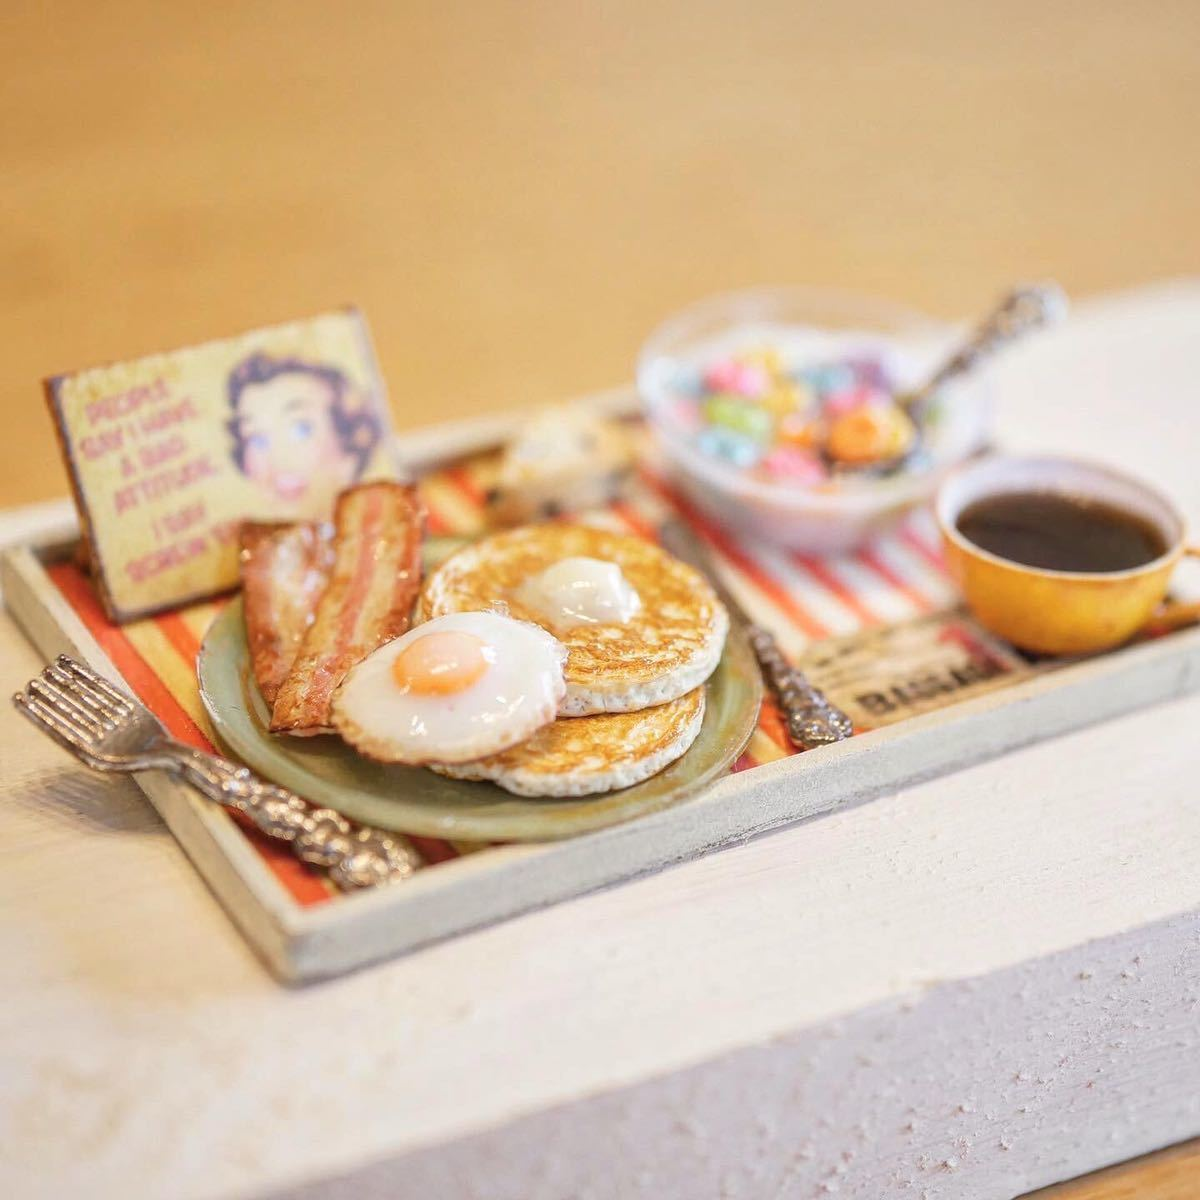 noecoro's 【ミニチュア】American breakfast set. ①